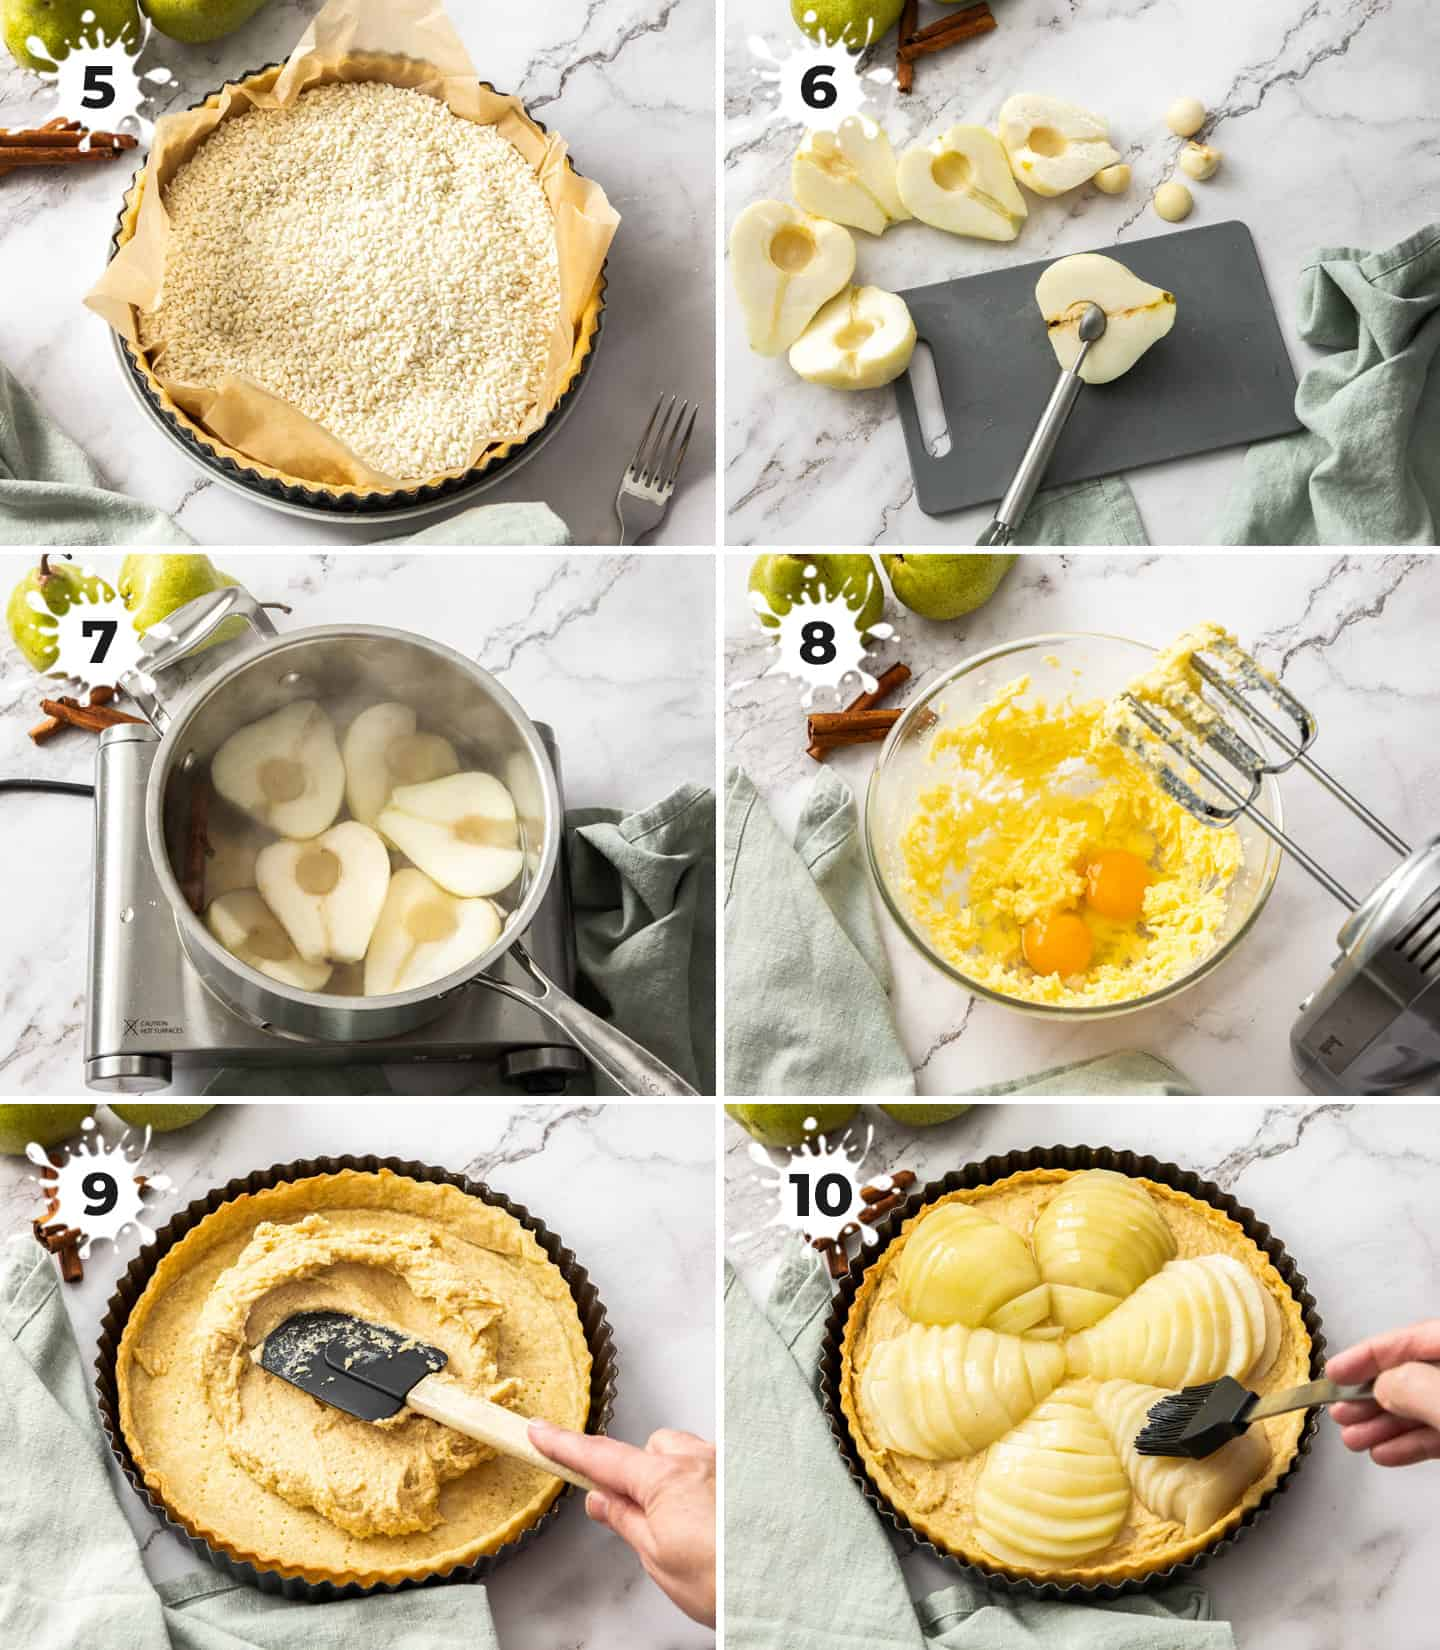 A collage of 6 images showing the steps to making the tart filling.